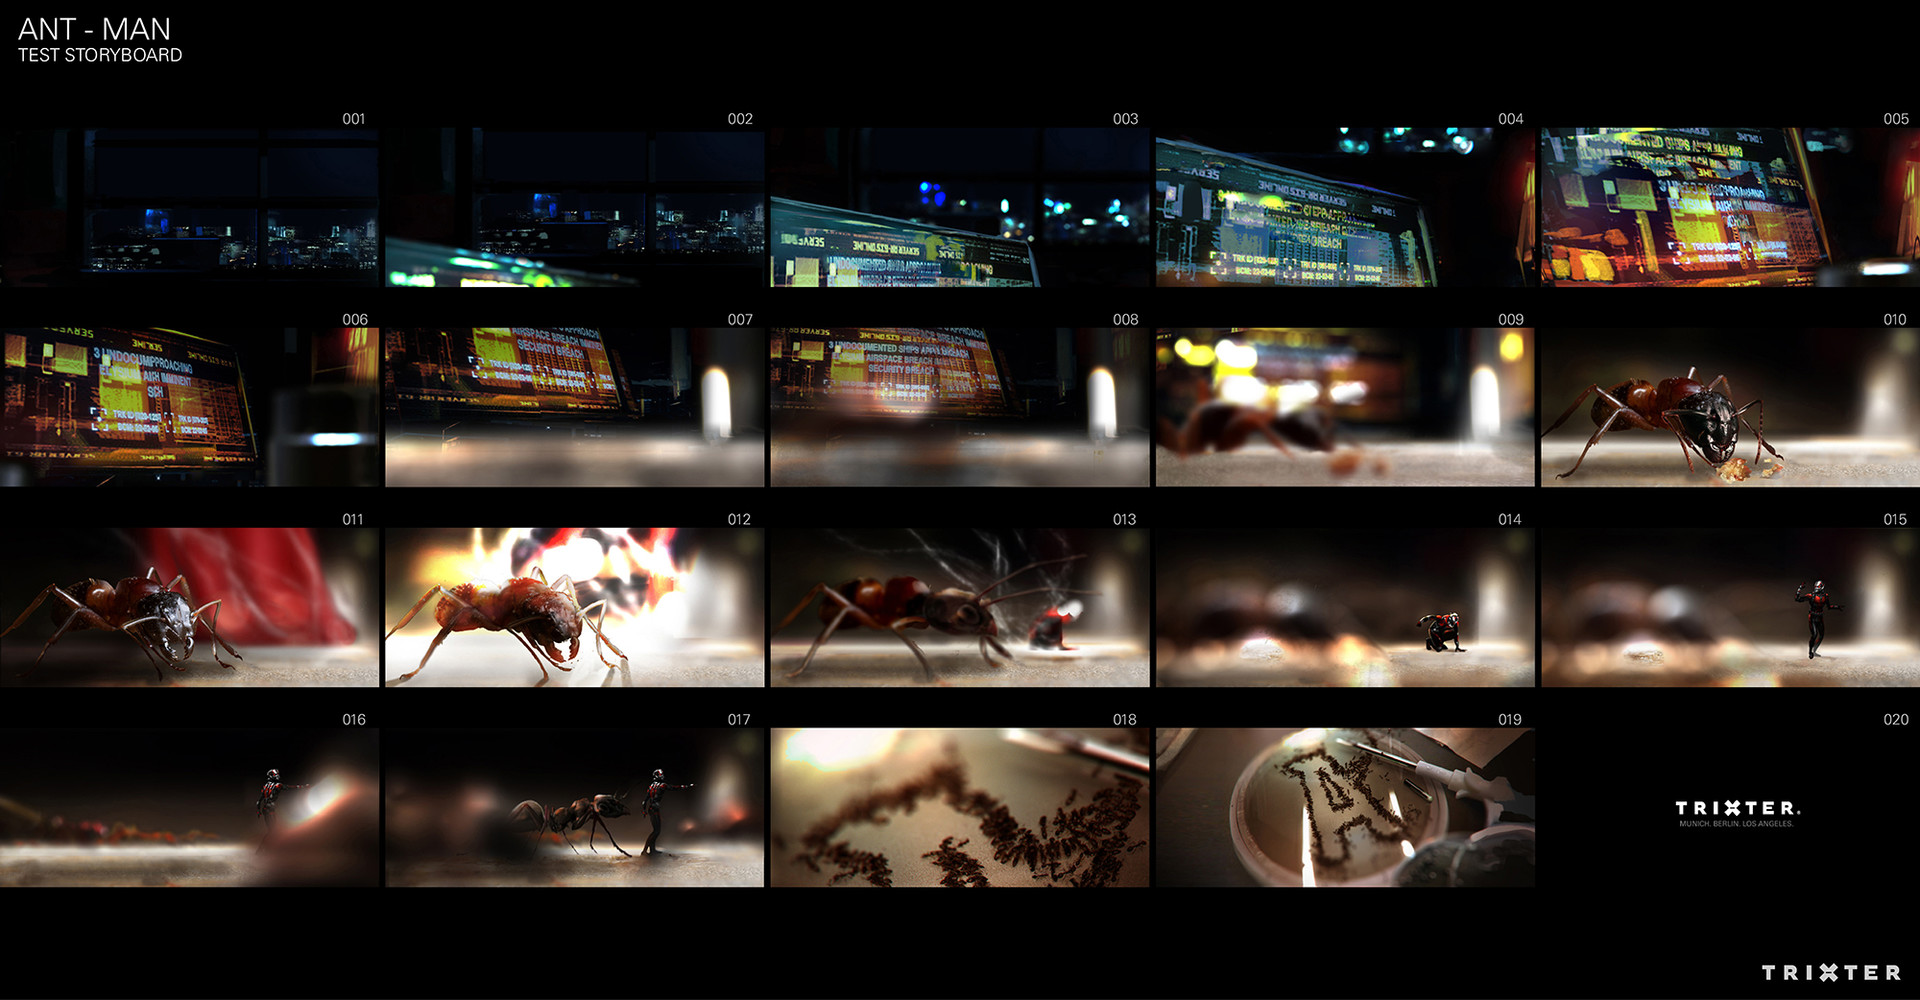 Paolo giandoso bf test storyboard complete small